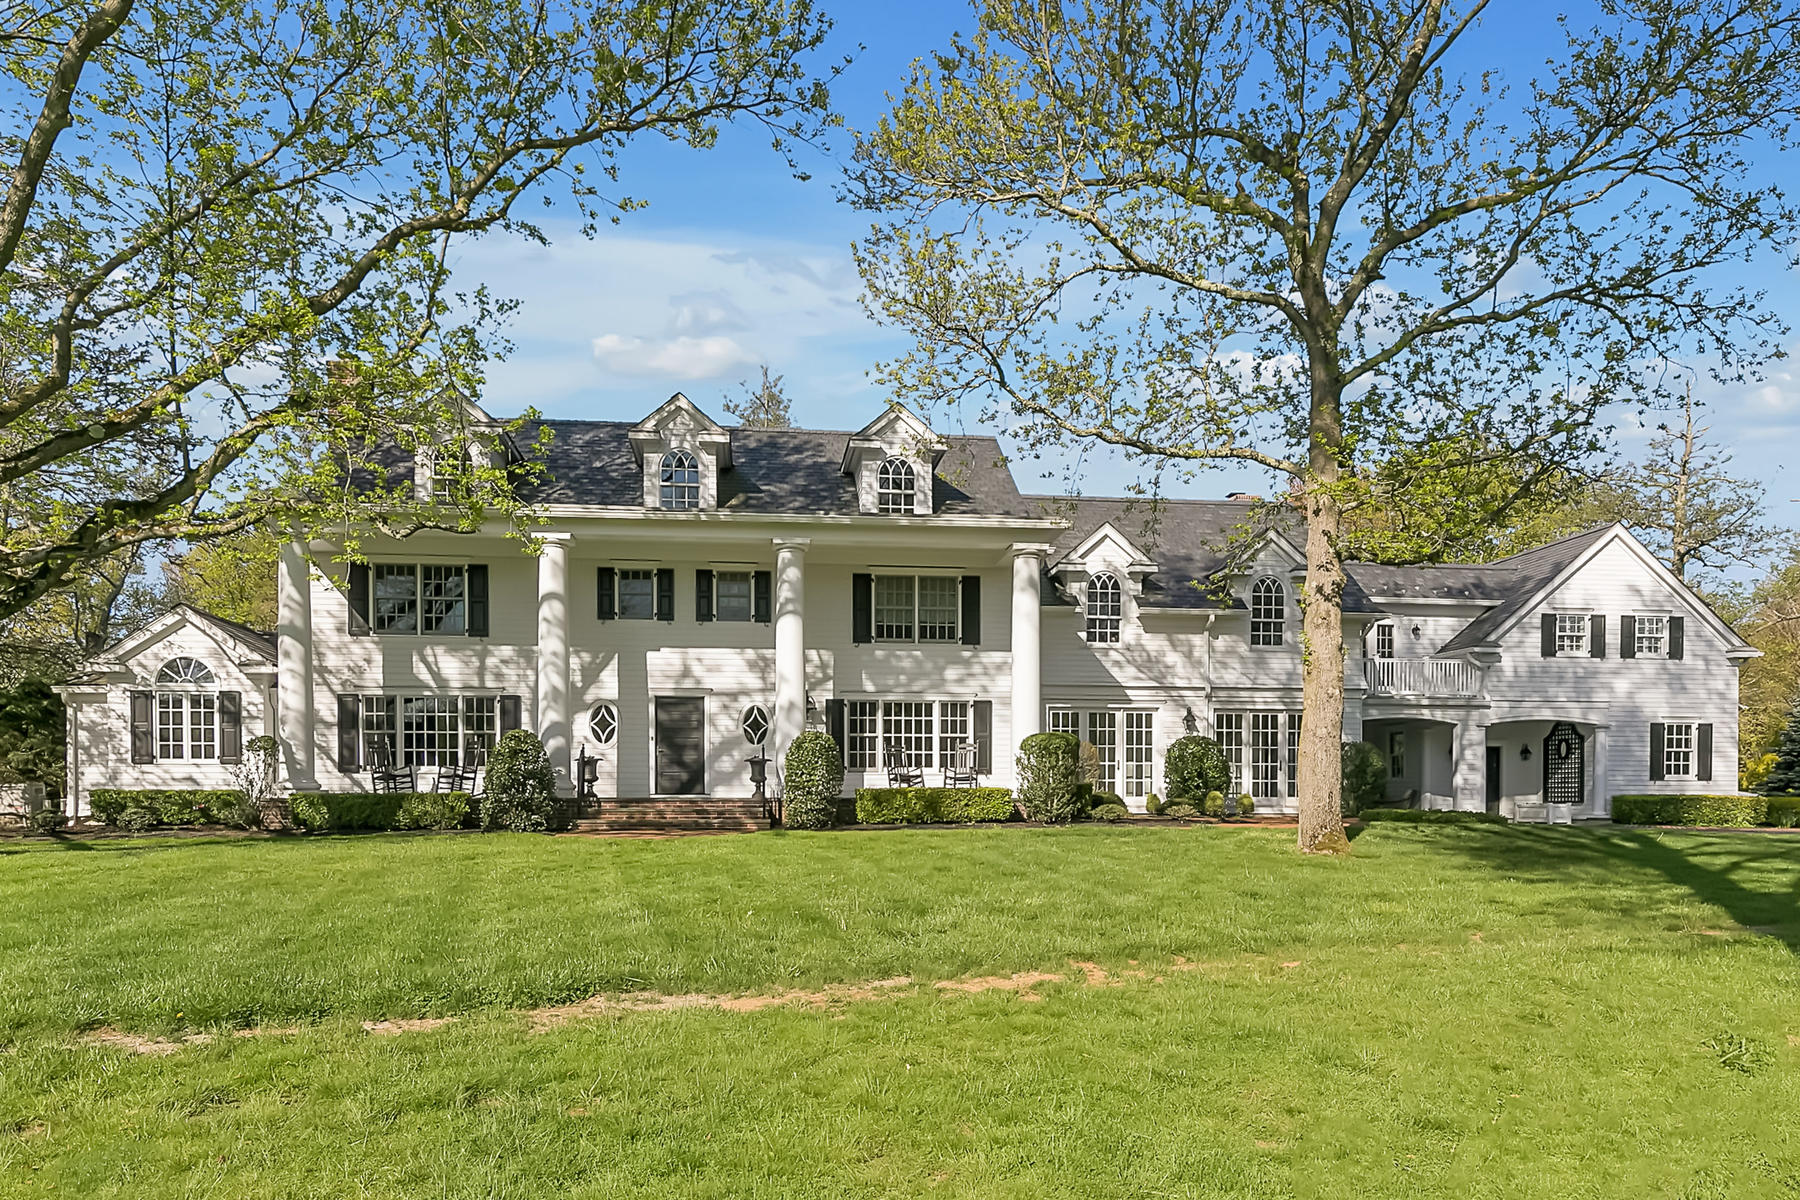 Single Family Homes for Sale at Stunning custom colonial in an amazing setting and location 4 Broadmoor Dr Rumson, New Jersey 07760 United States